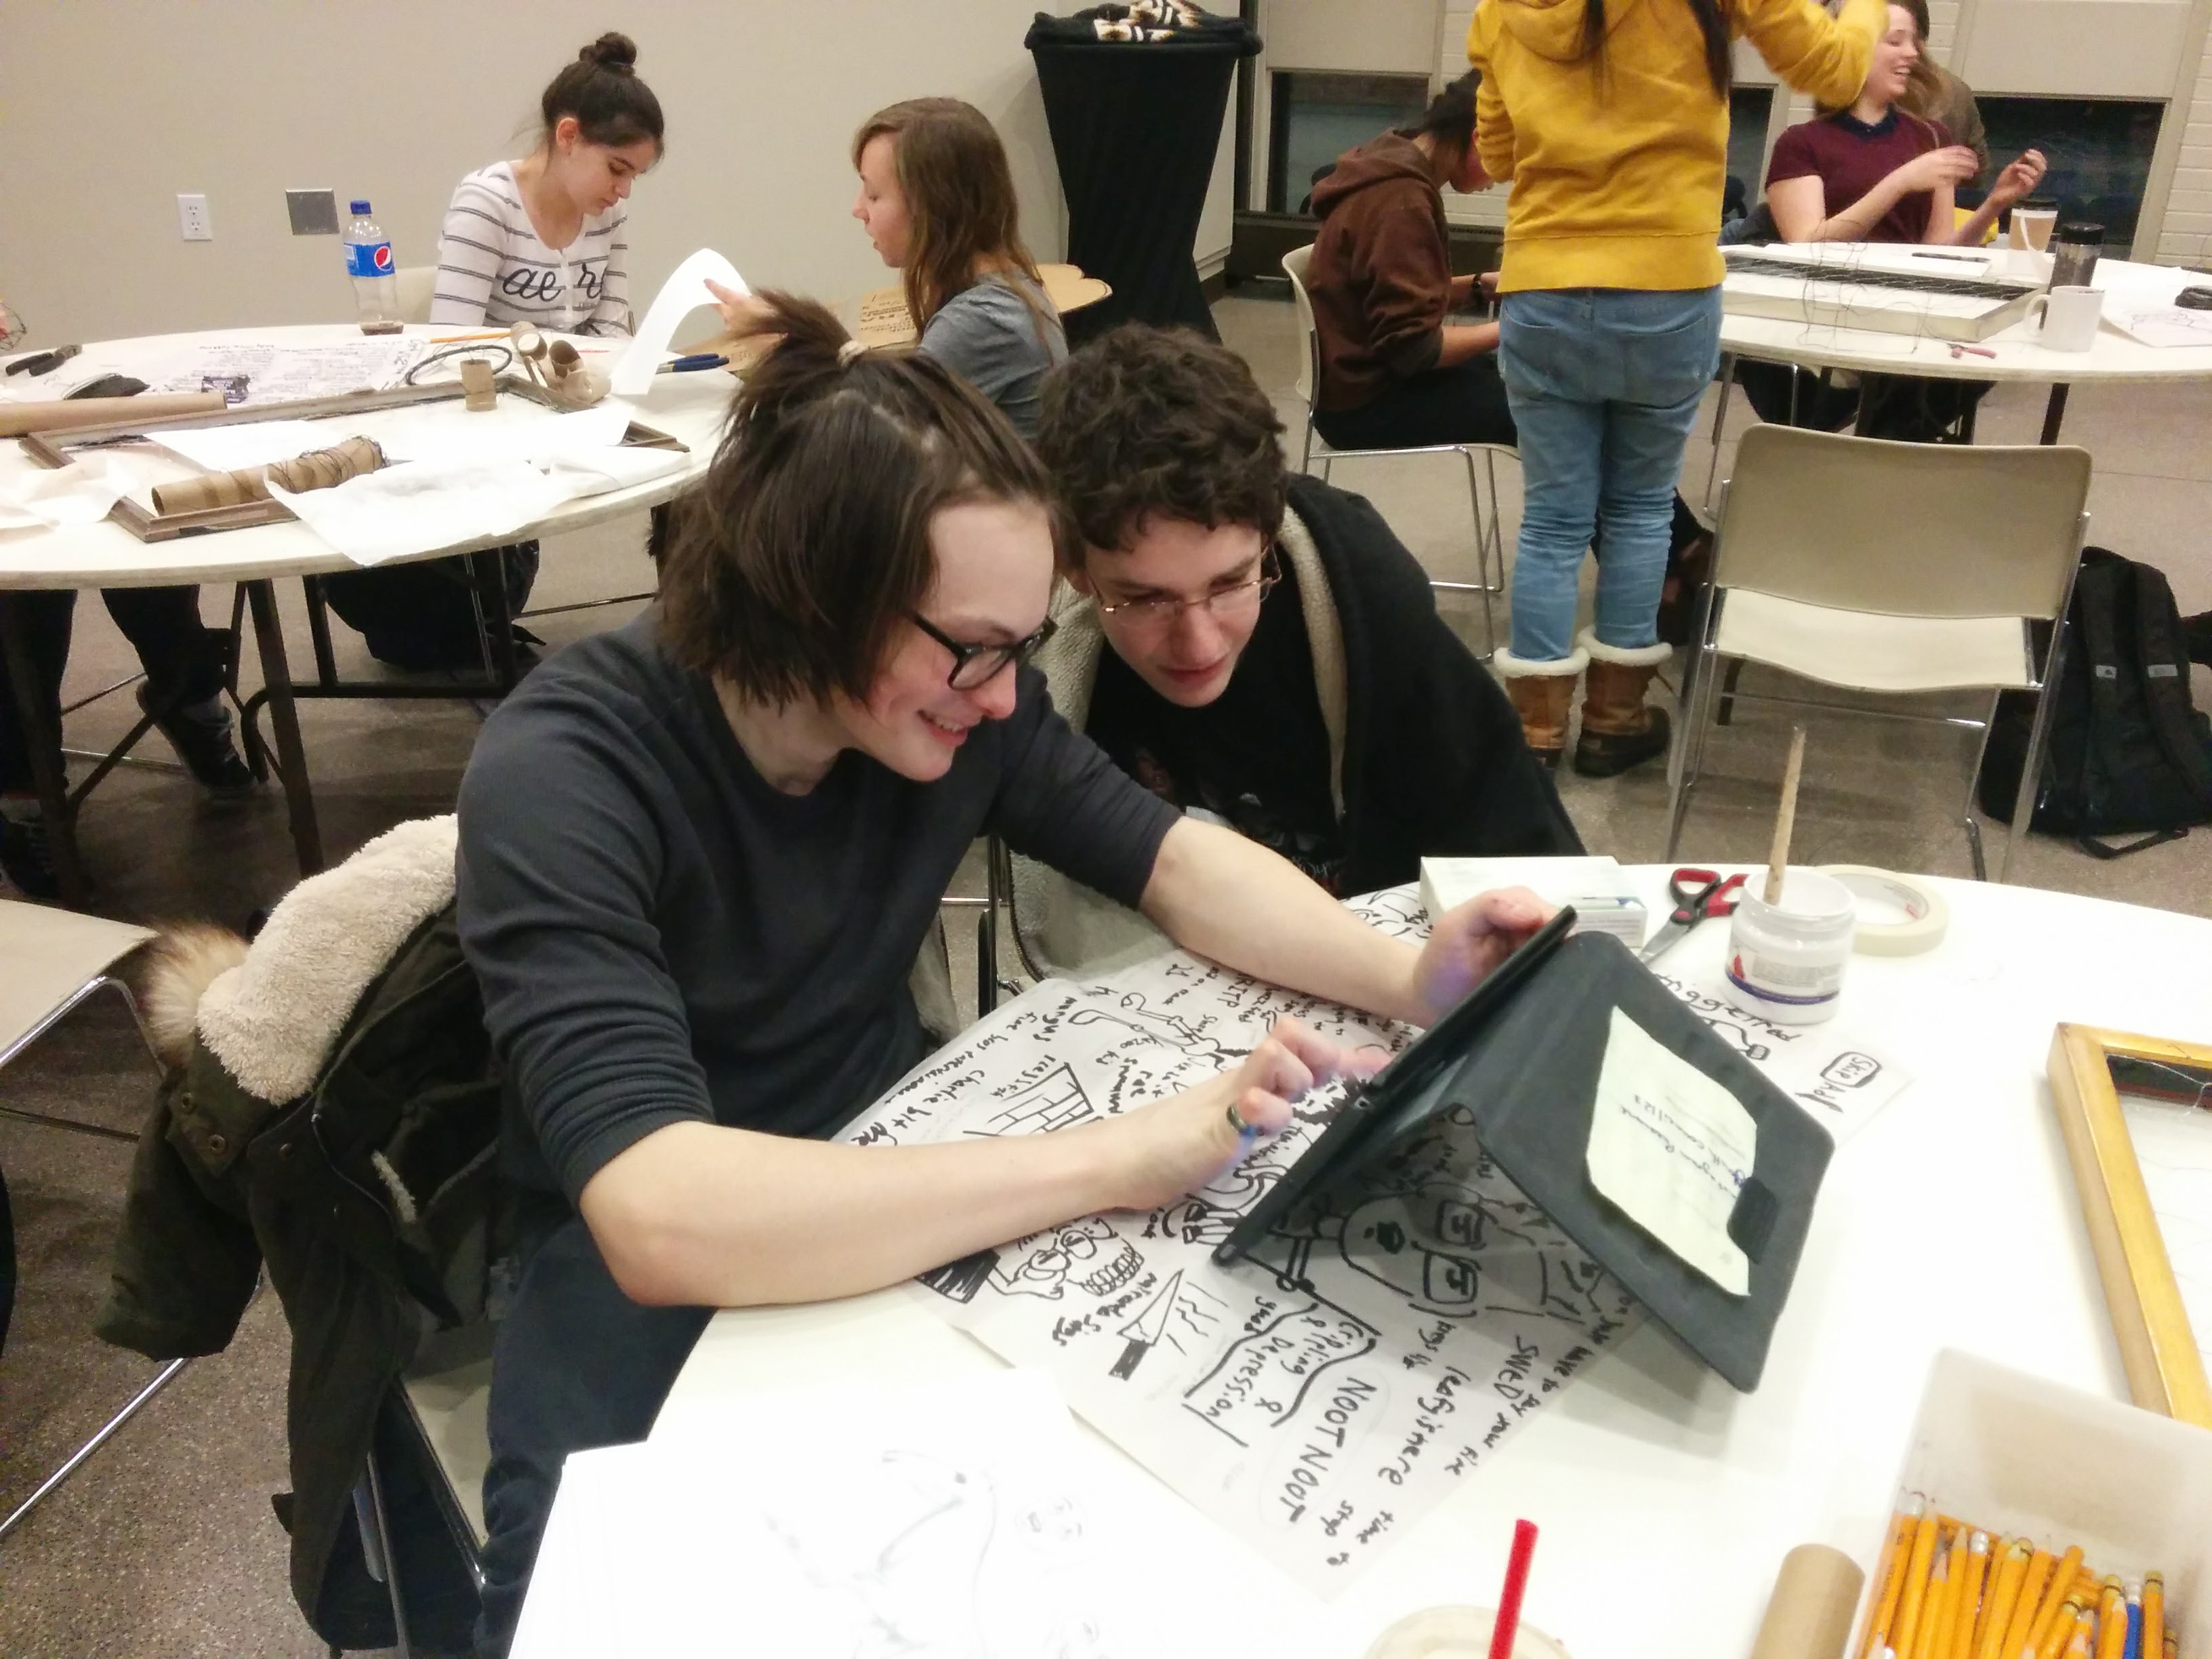 Two teenagers working together on an art project using an iPad at a Youth Council meeting